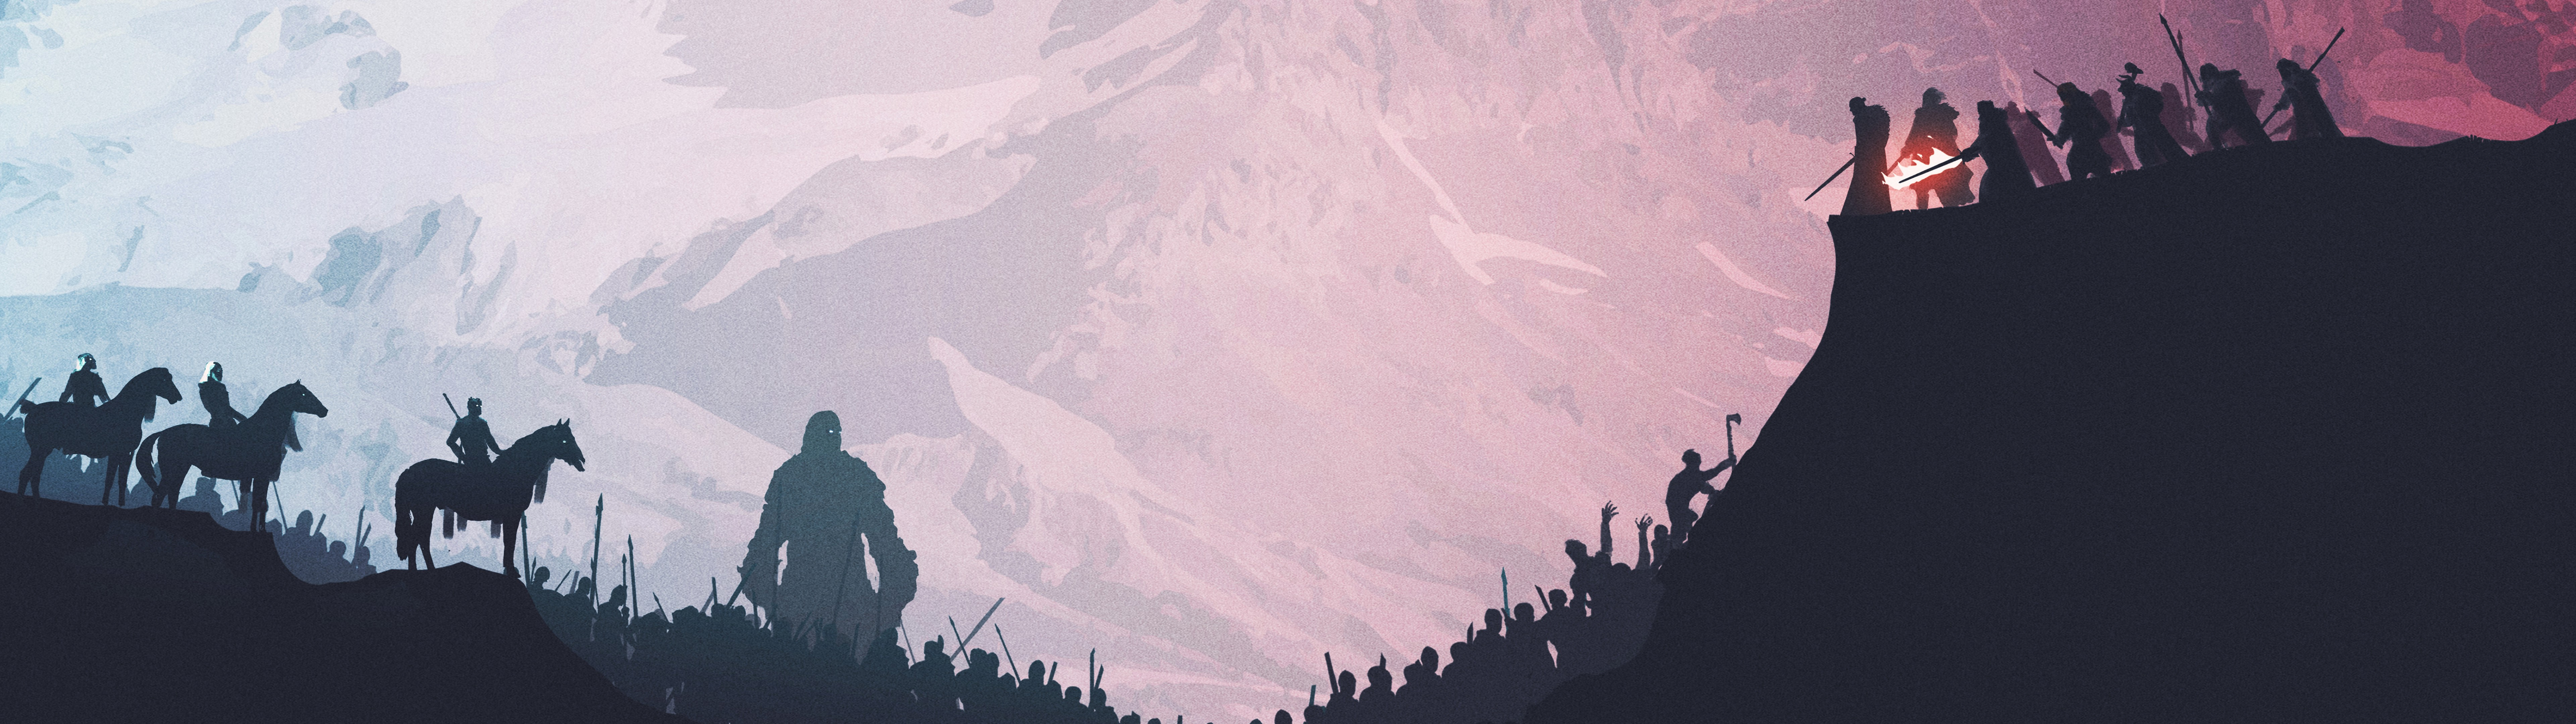 Game Of Thrones Dual Monitor Wallpaper Posted By Christopher Thompson